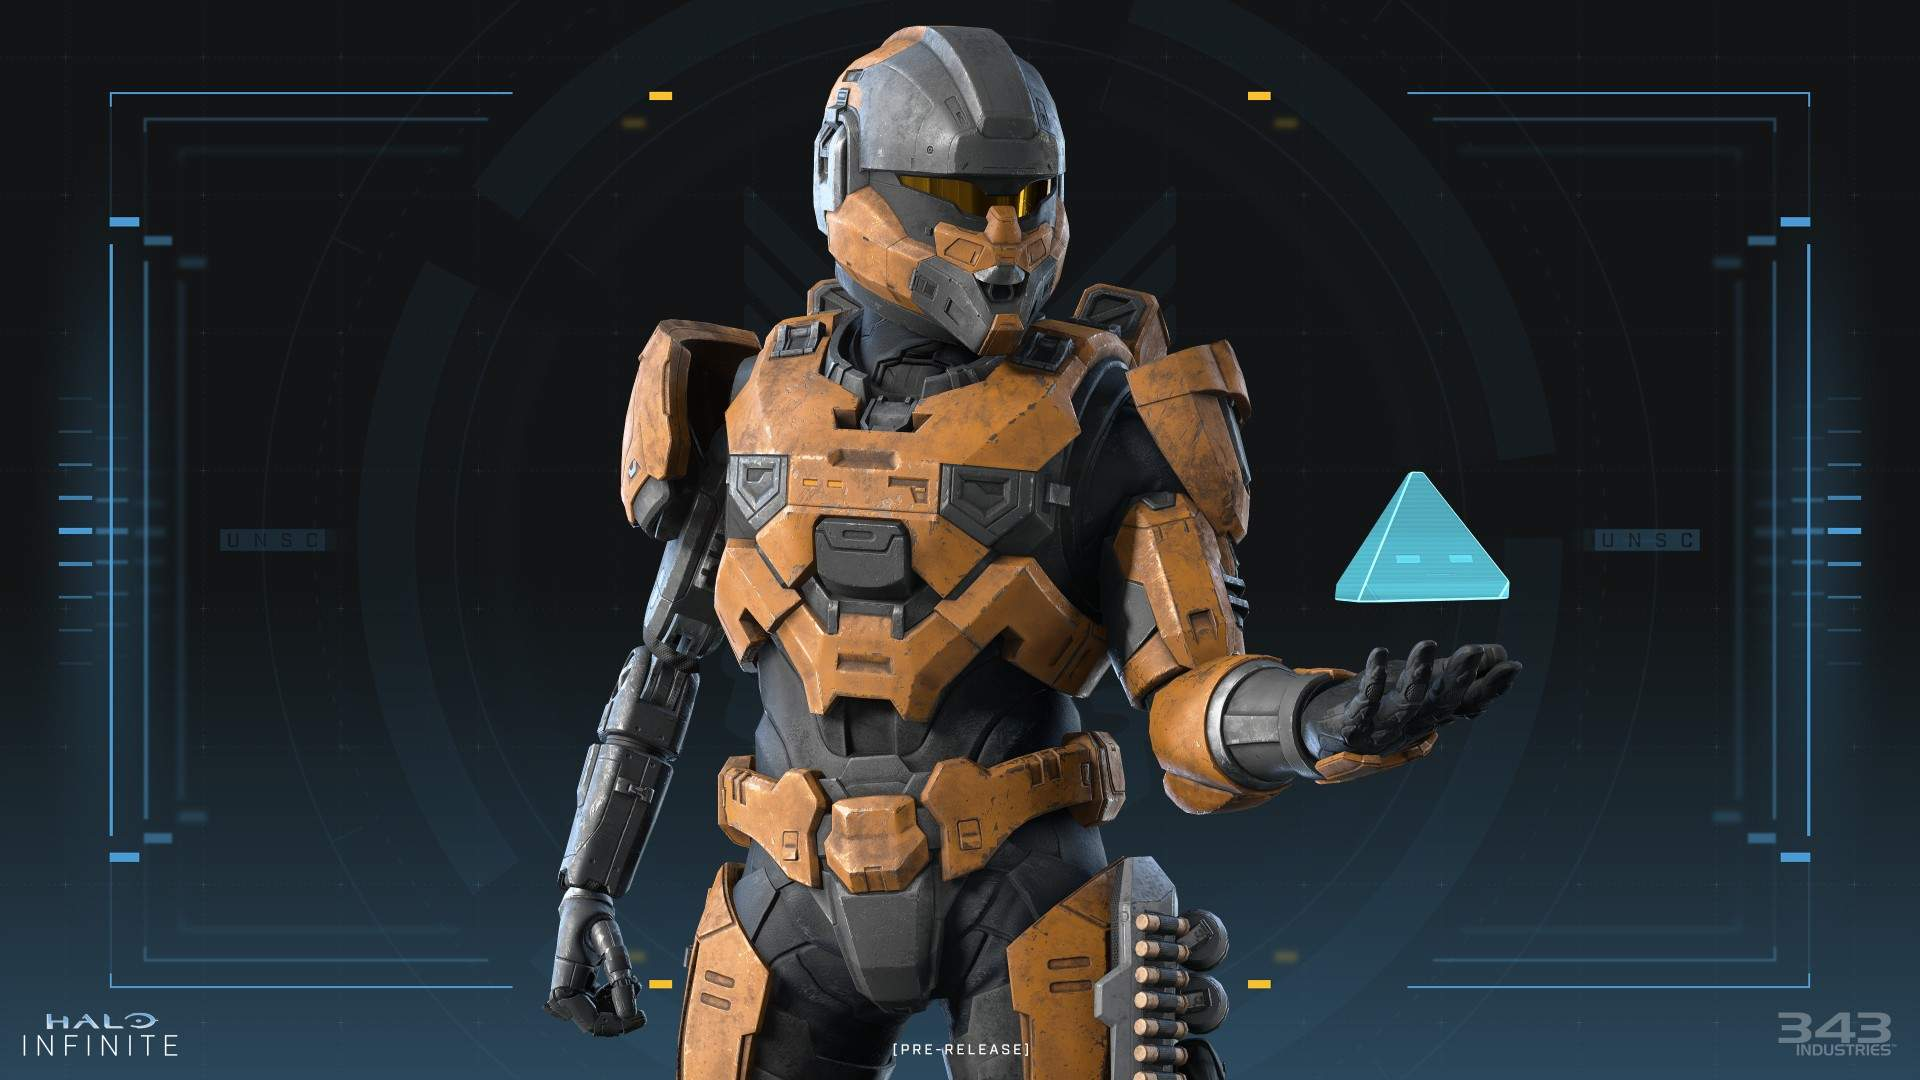 343 Industries Gives a Sneak Peek at Accessibility Features Coming to Halo Infinite